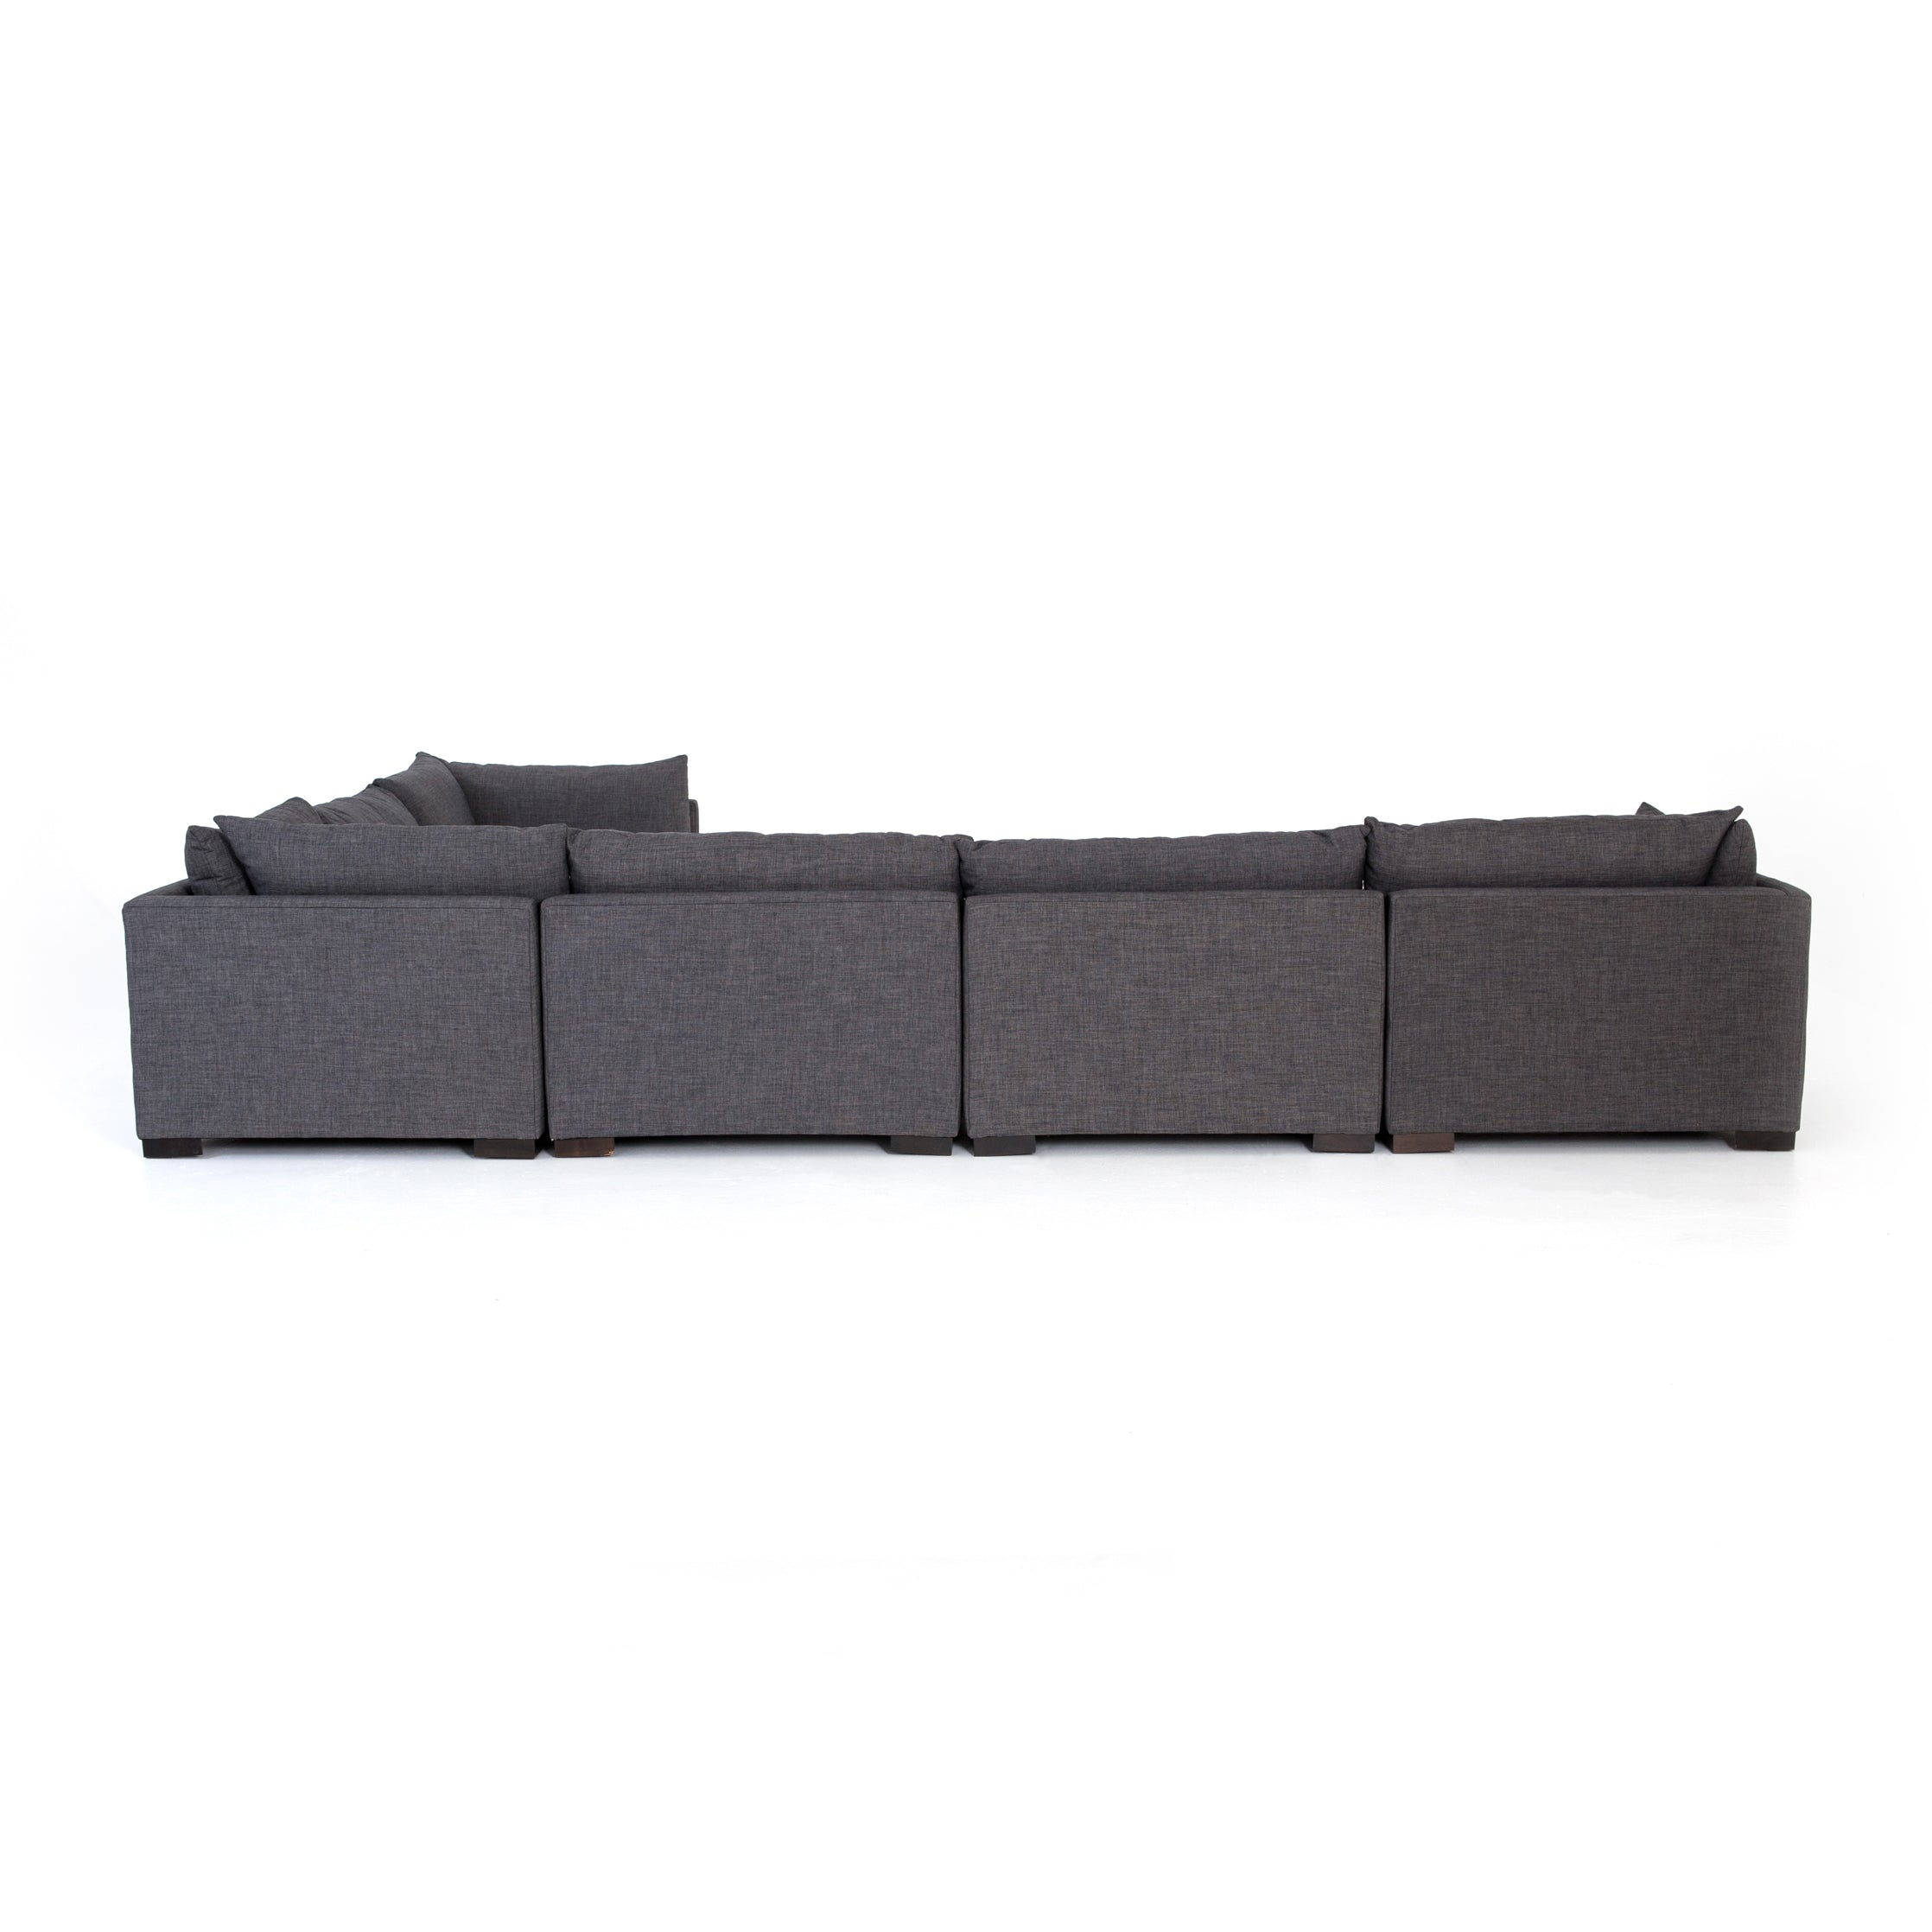 Westwood 6-Pc Sectional-Bennett Charcoal